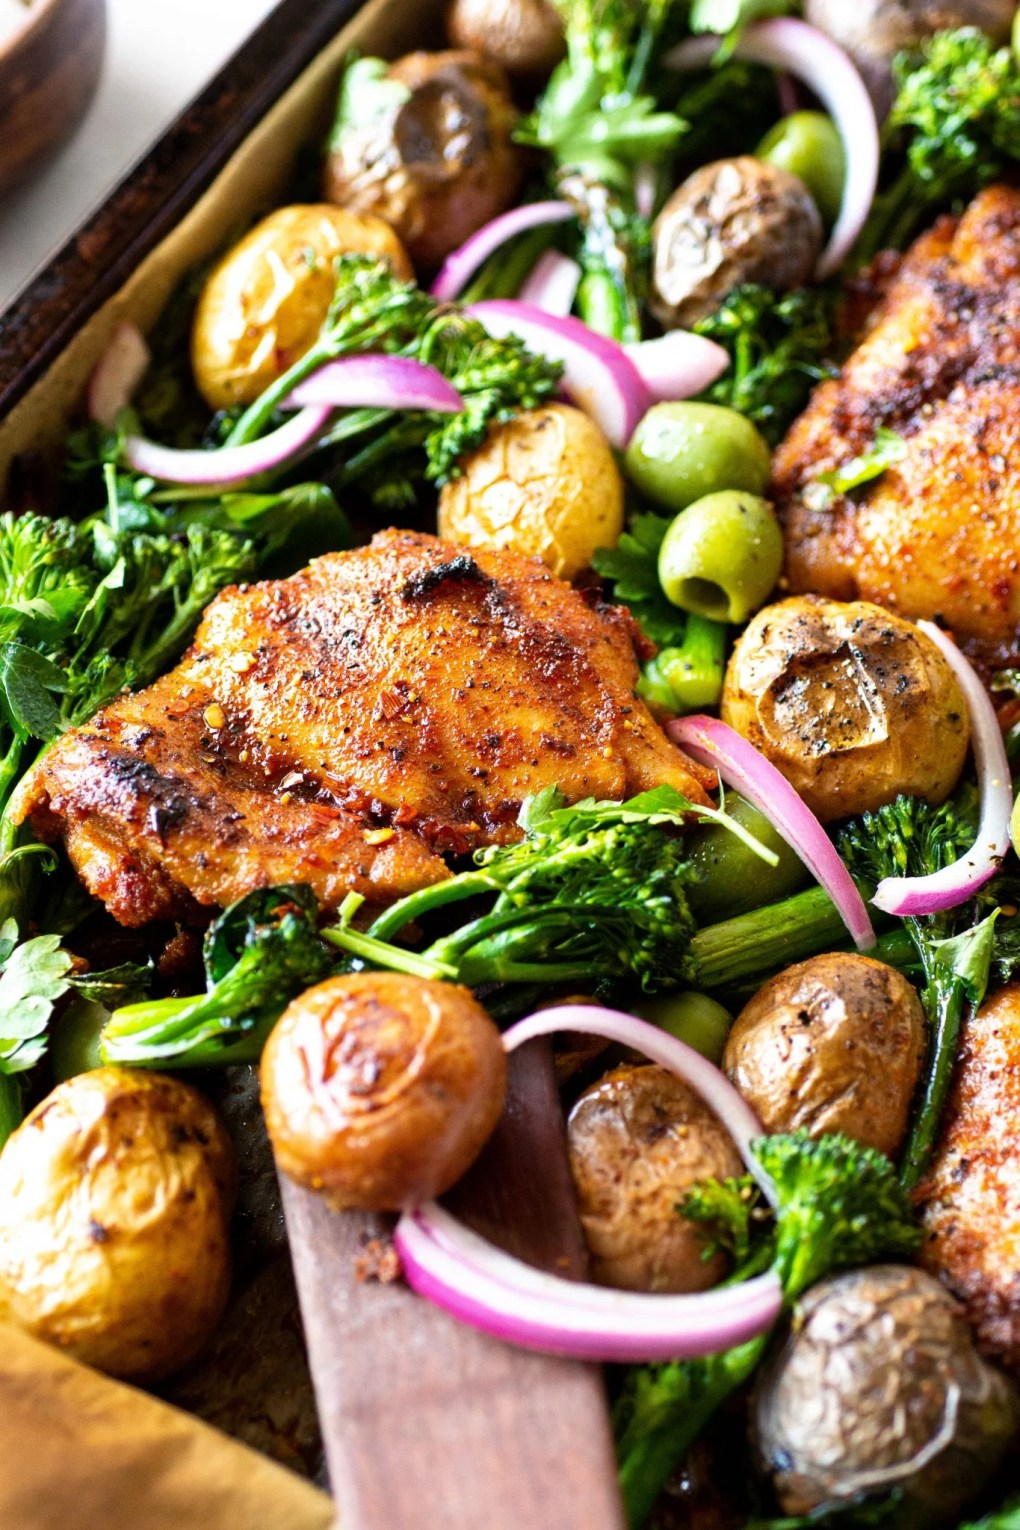 A 45 degree view of a roasting tray with spiced chicken thighs, potatos, broccolini, olives, and pickled red onions